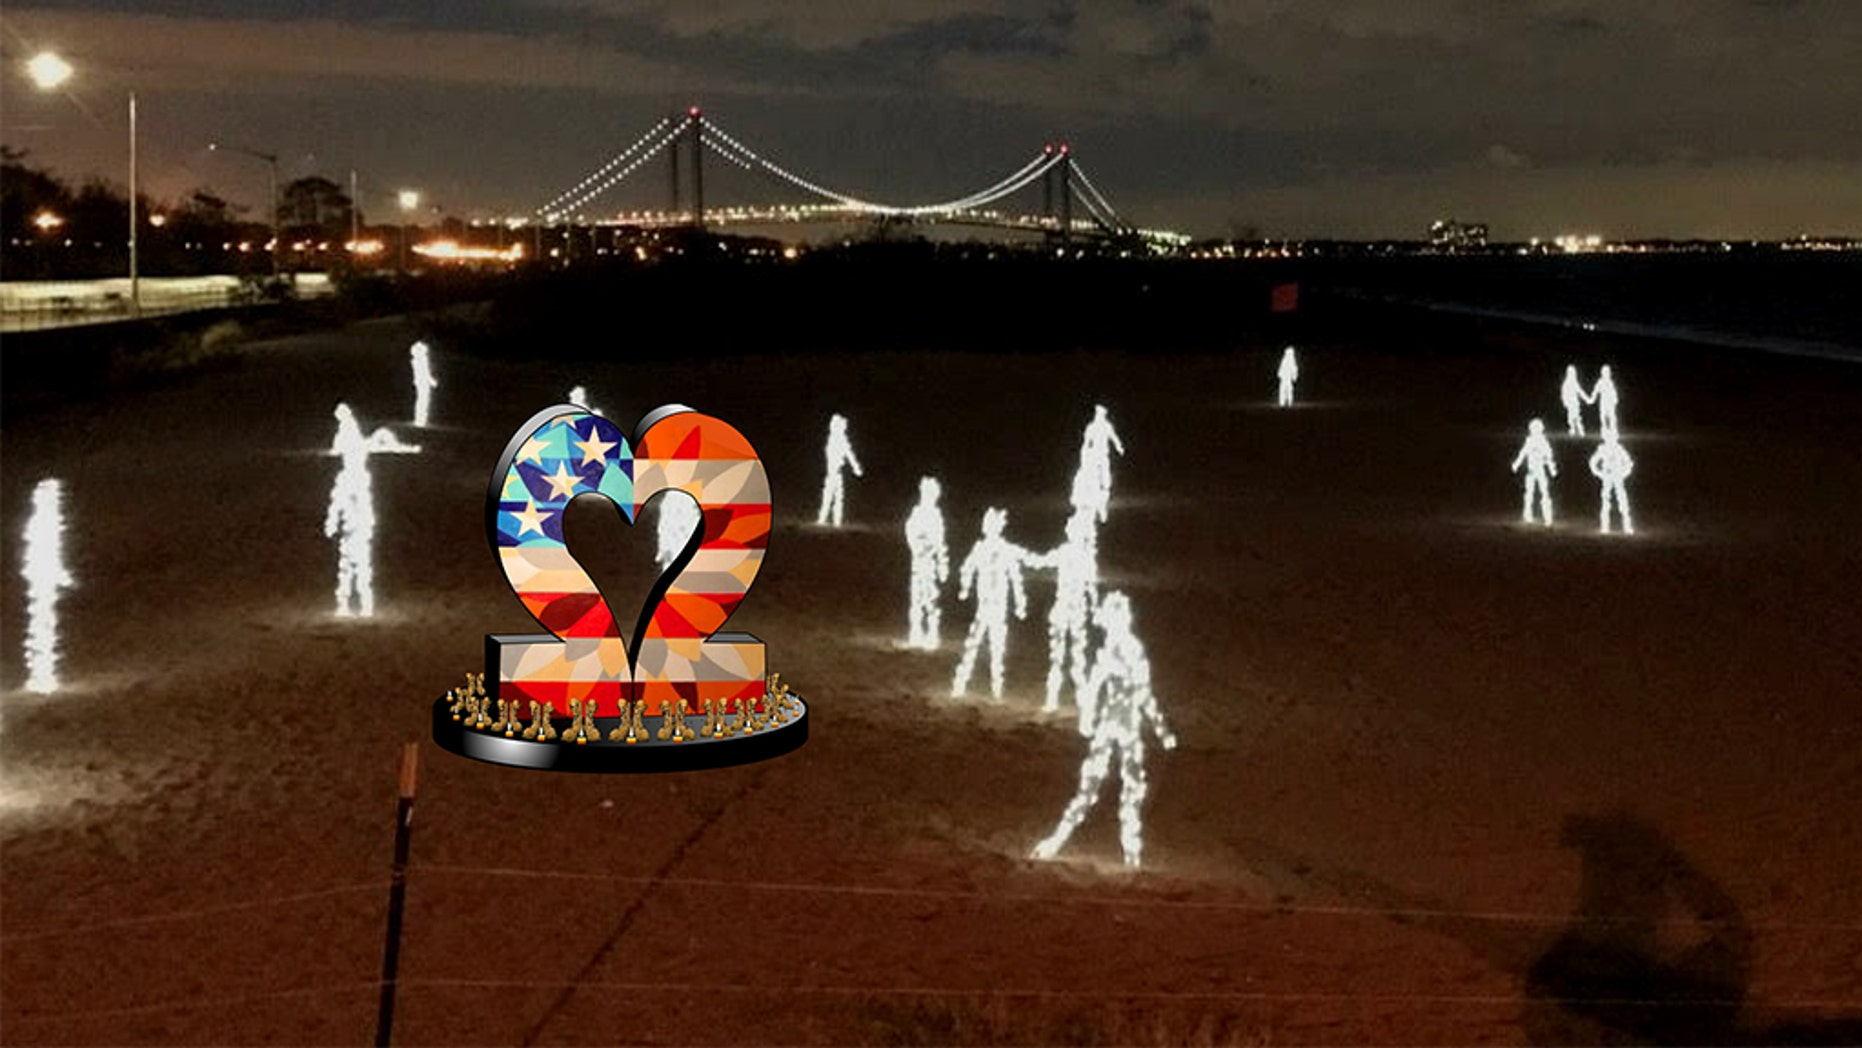 Artist Scott LoBaido on Wednesday said his latest creative endeavor is an installation that seeks to bring attention to suicide rates among veterans.